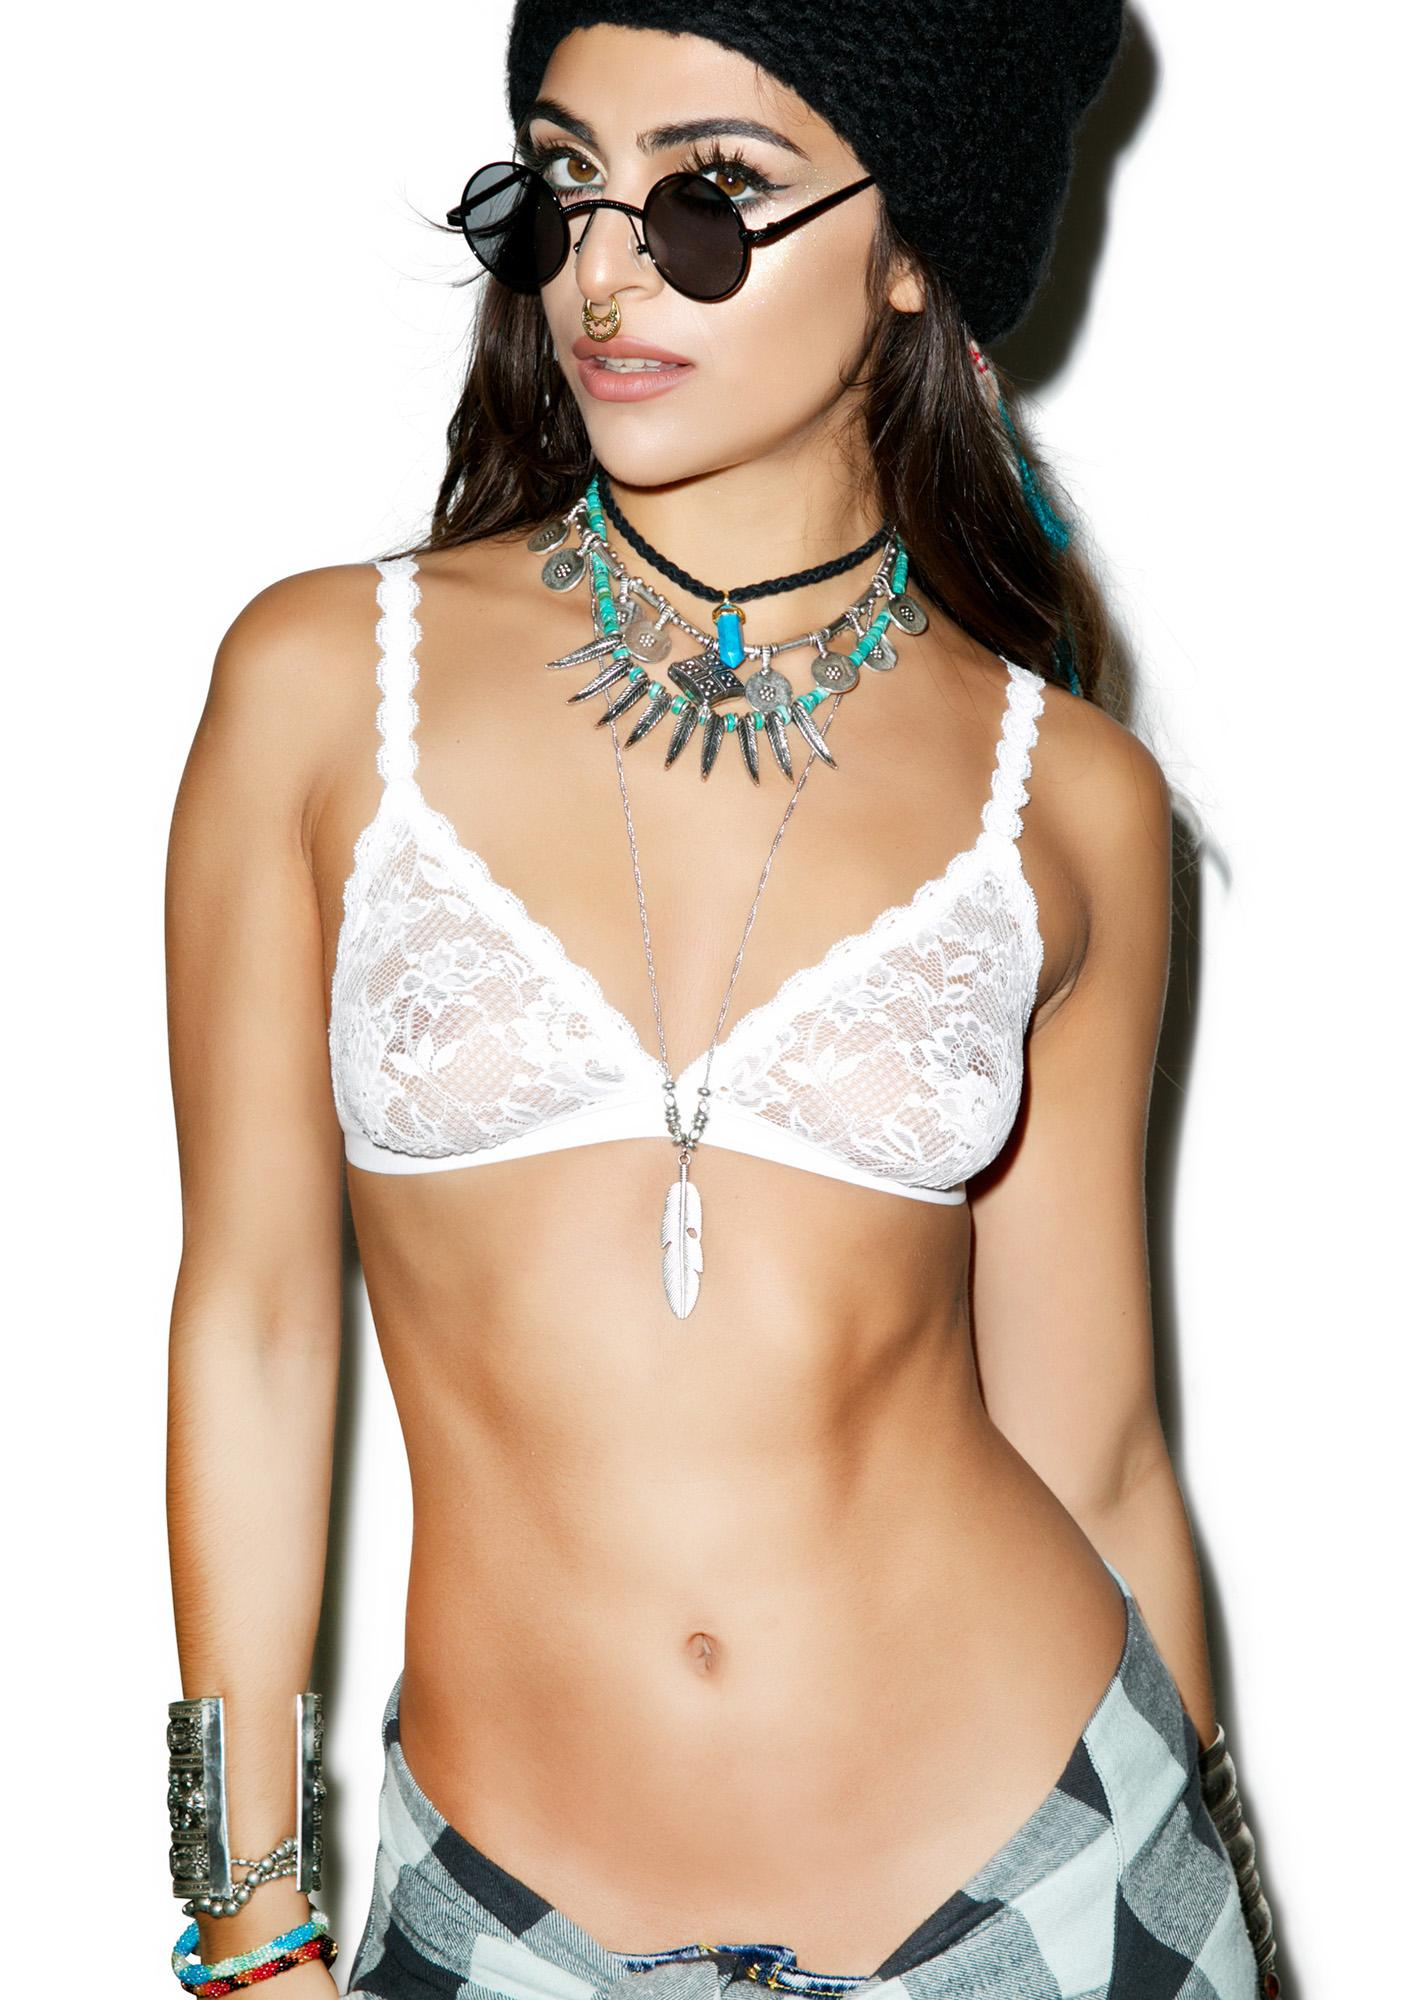 CSBLA Dreamie Triangle Bra